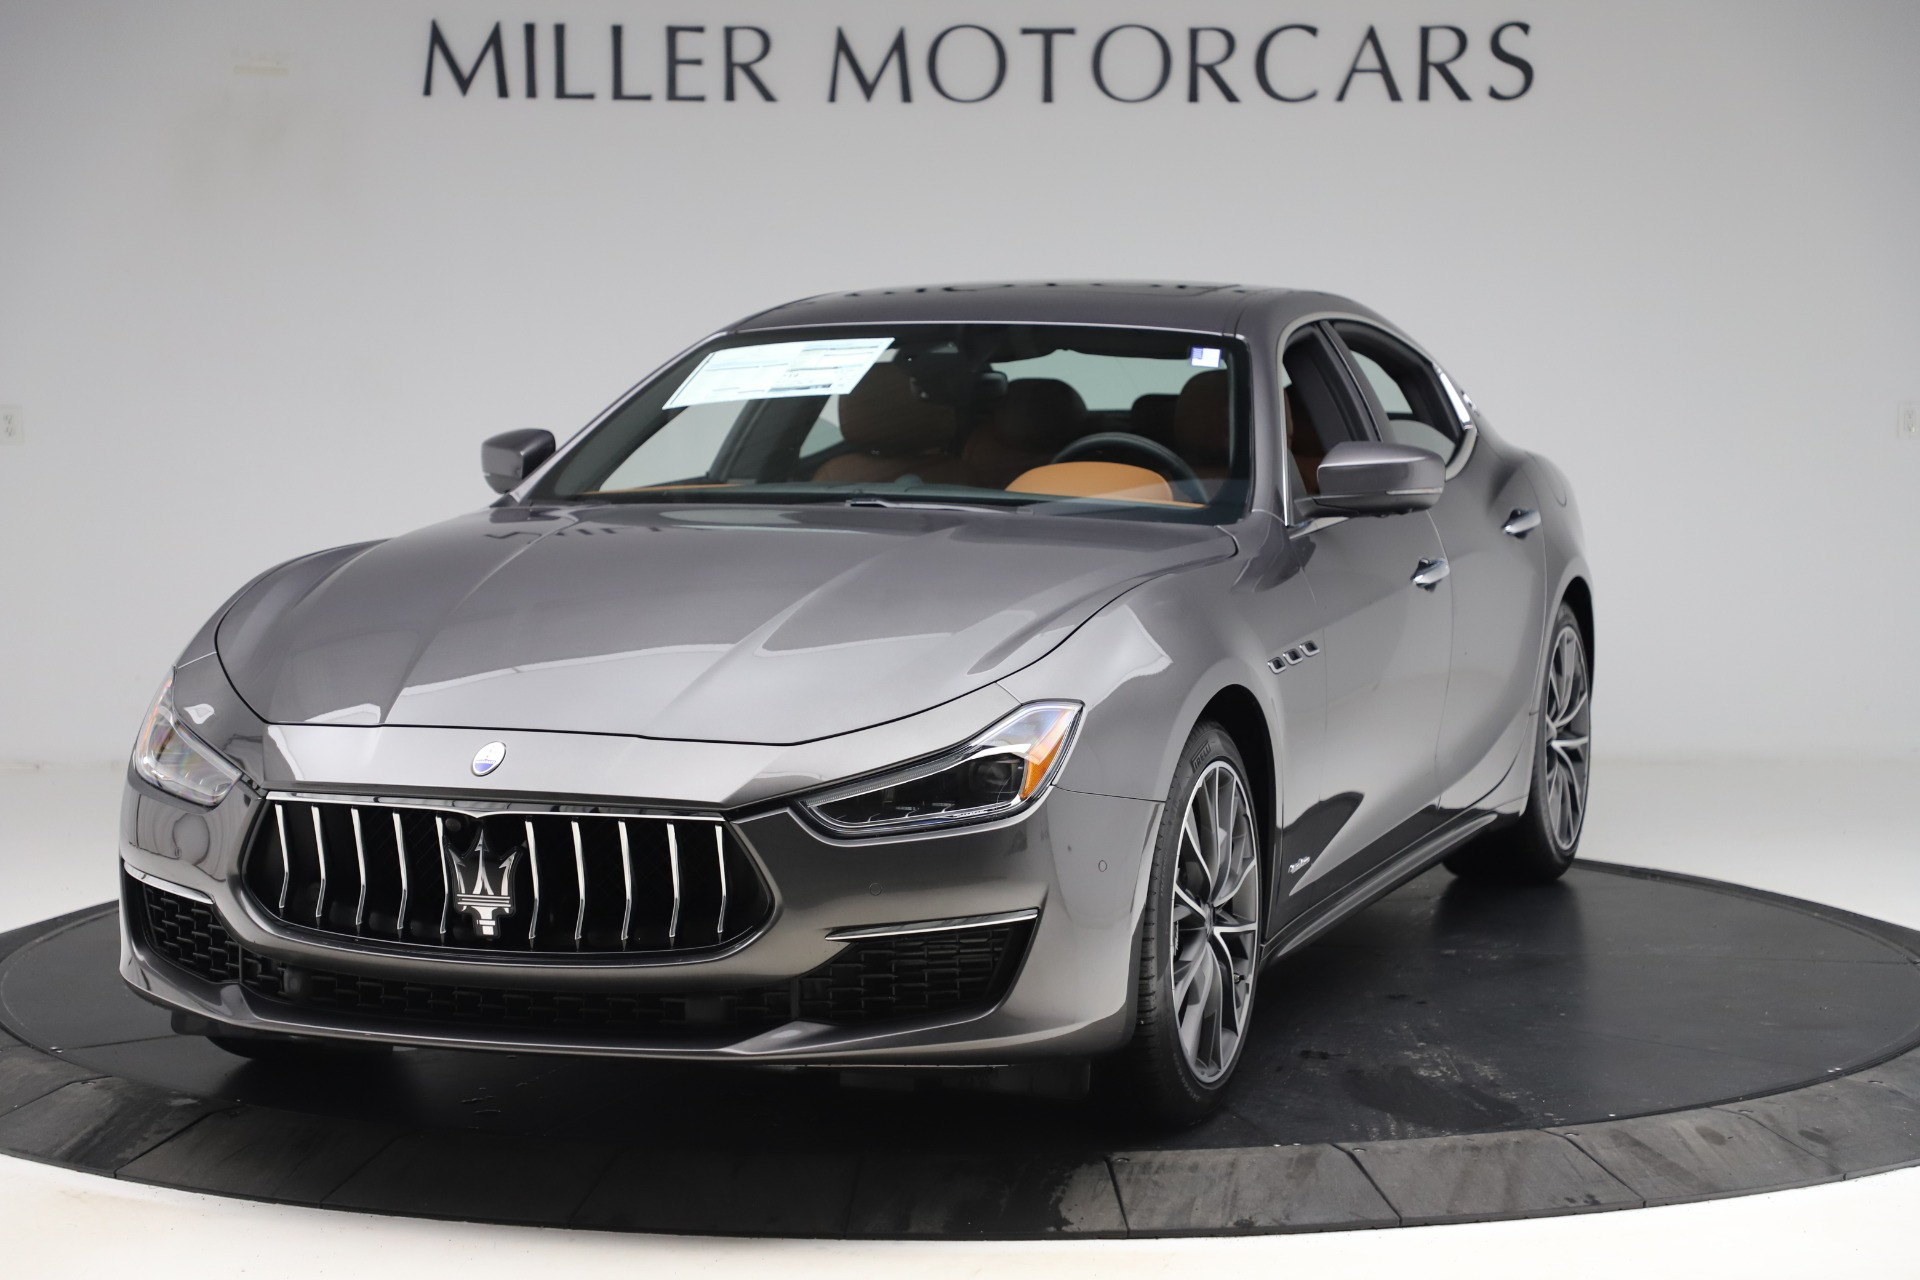 New 2019 Maserati Ghibli S Q4 GranLusso for sale $98,095 at Maserati of Greenwich in Greenwich CT 06830 1